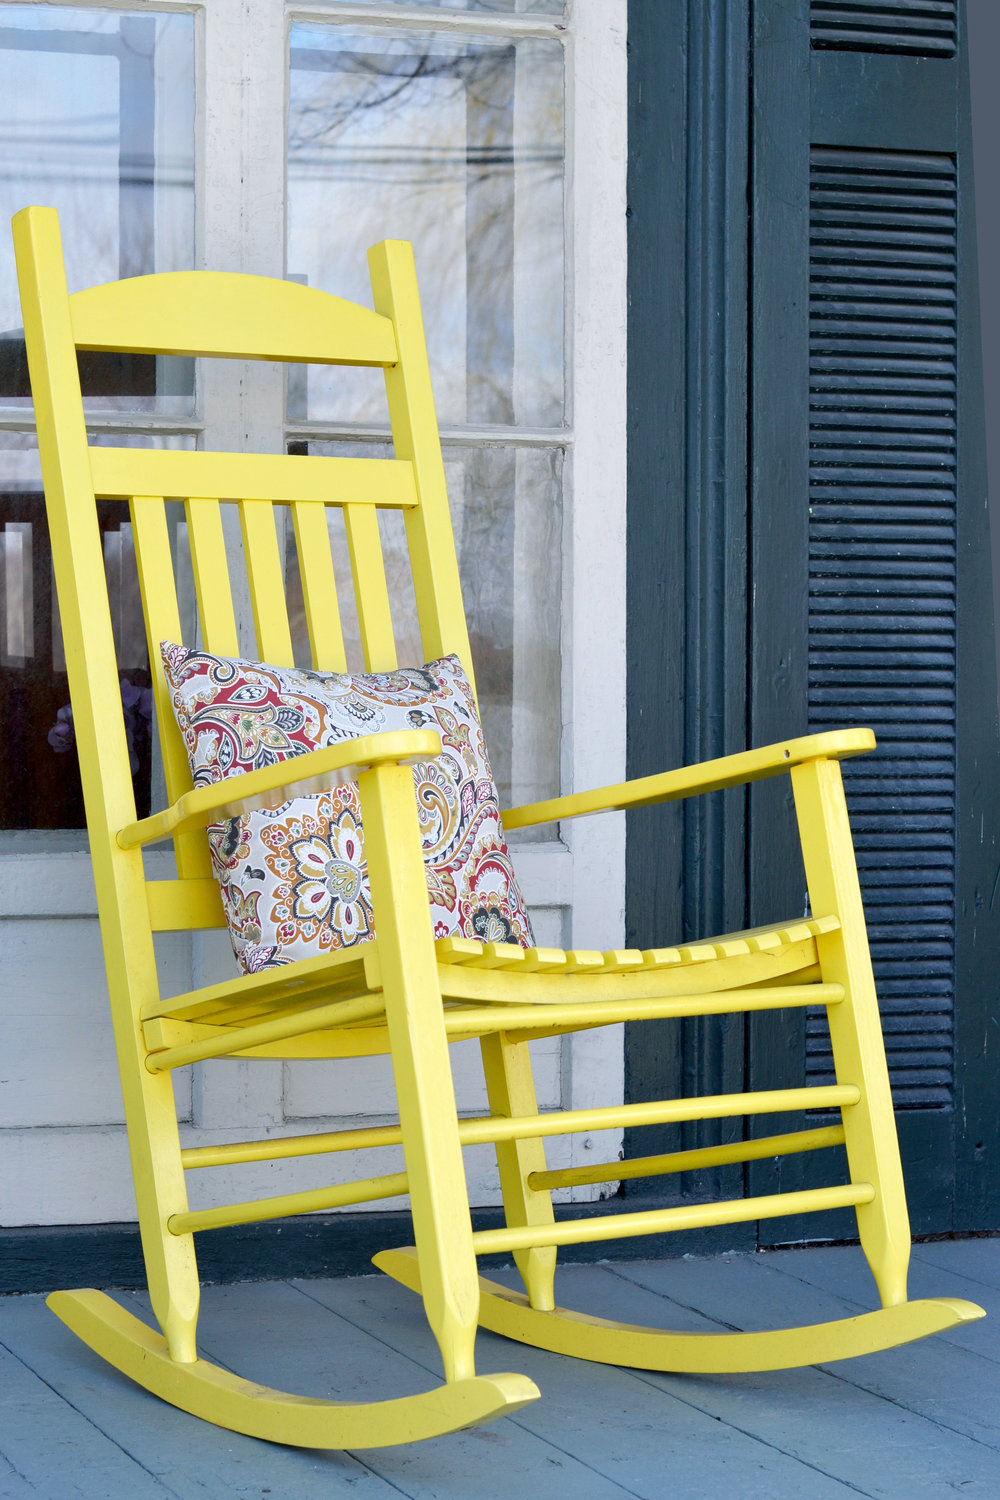 yellowrockingchair.jpg